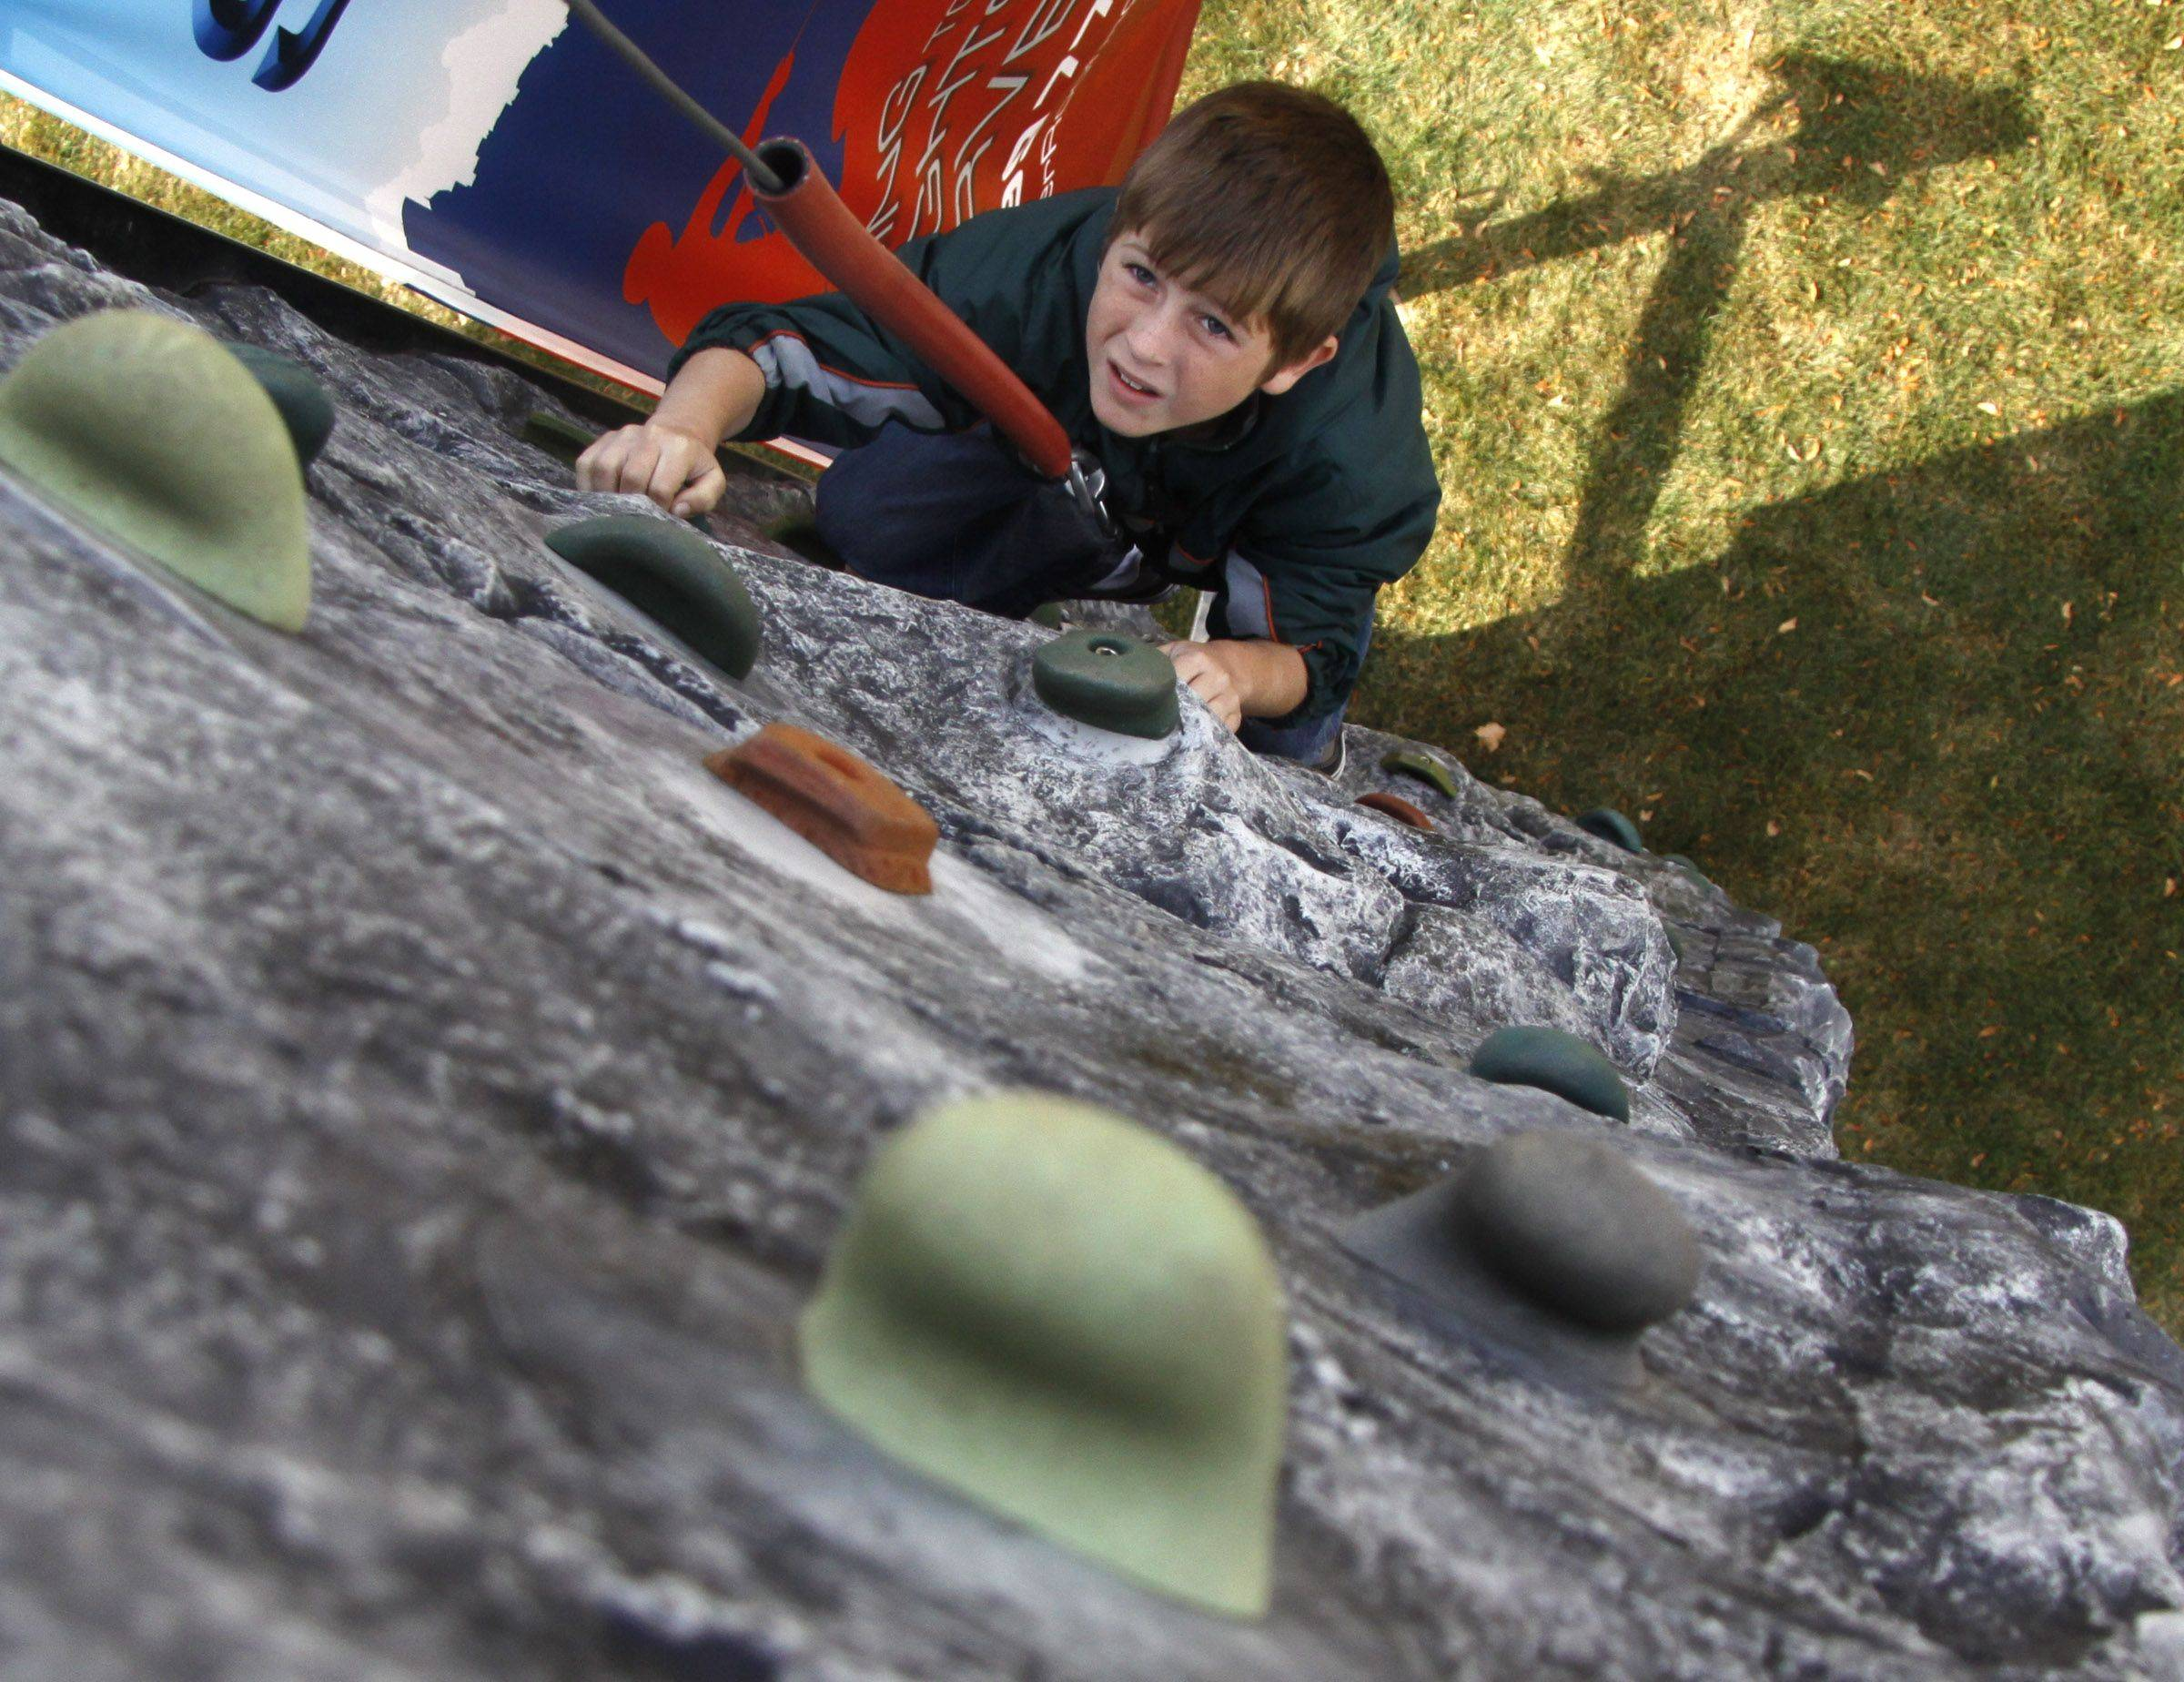 Simon Hoffman, 8 of Wheaton climbs the 32-foot climbing wall at Make a Difference Day in Wheaton.